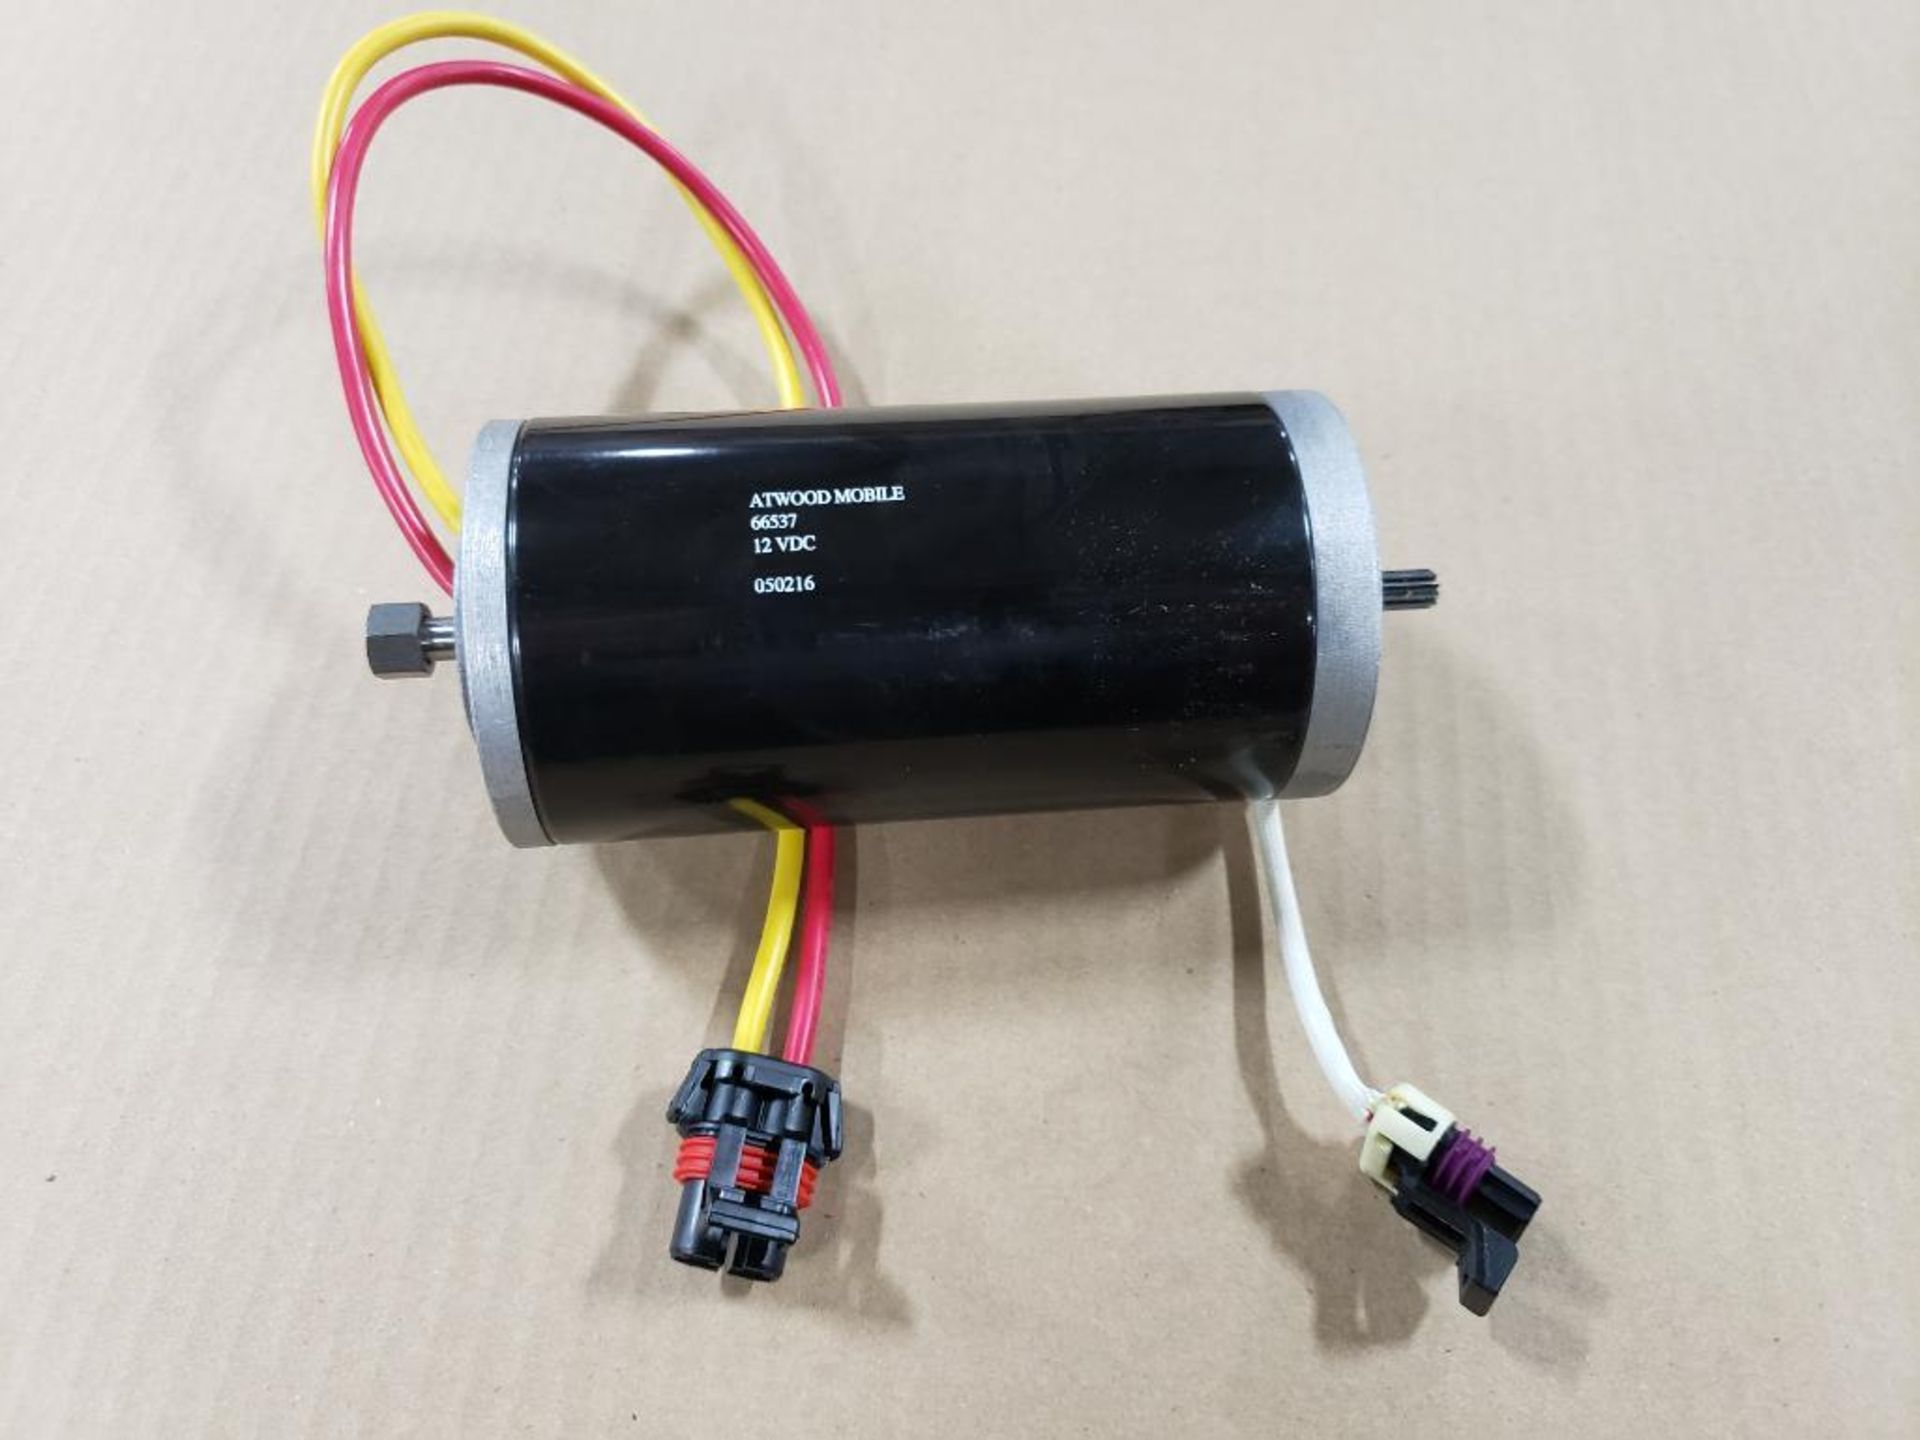 Qty 18 - Chiaphua components PM30R-60F-1004. Atwood Mobile 66537 12VDC Motors. New in box. - Image 3 of 5